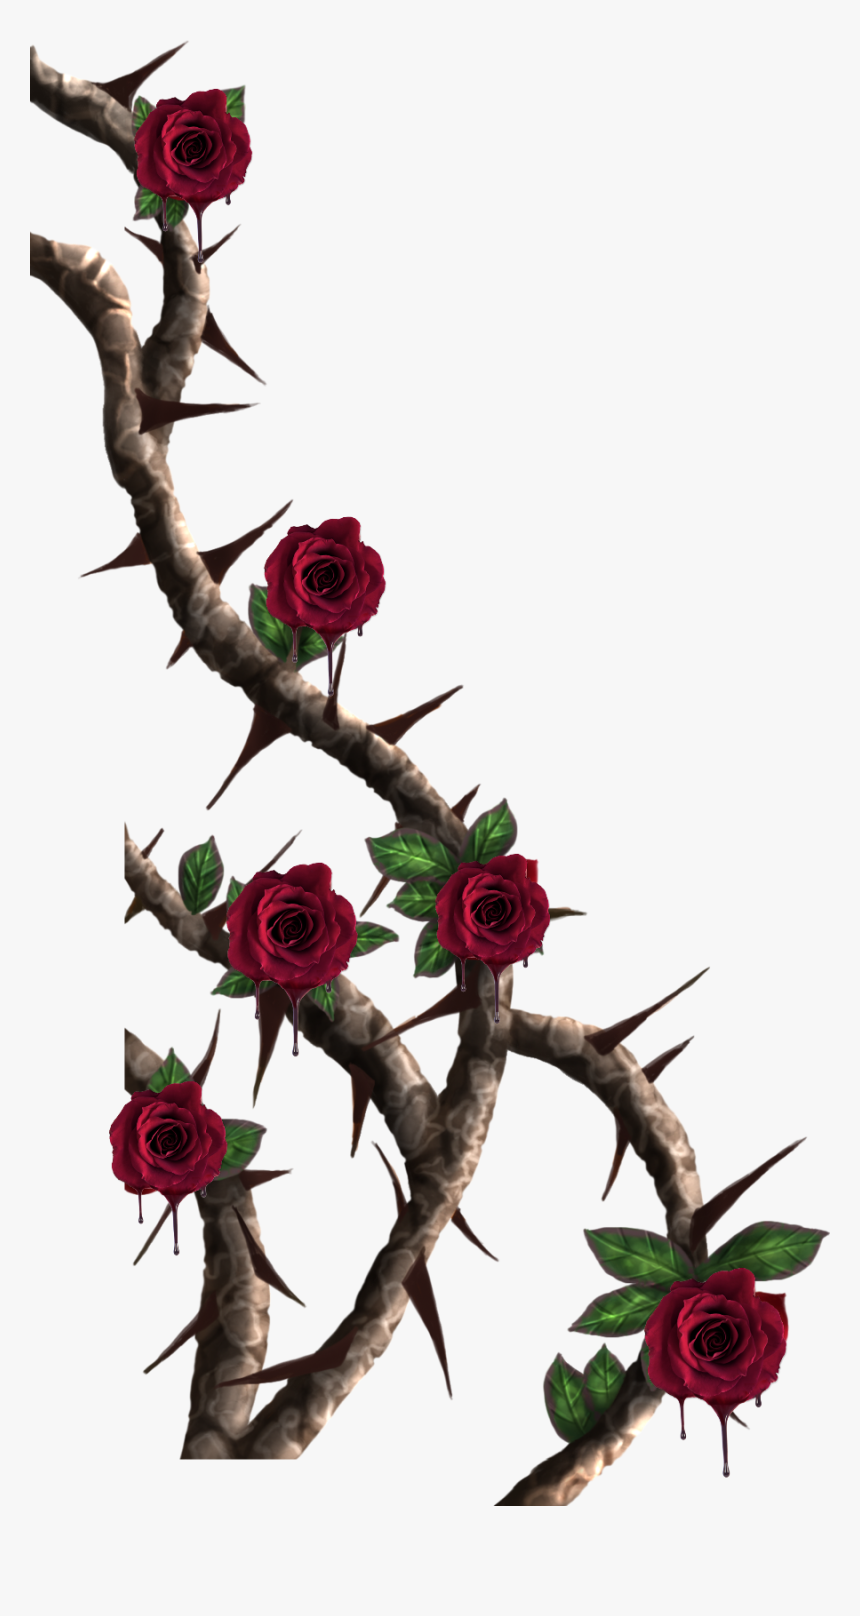 Rose Vine Png, Transparent Png, Free Download